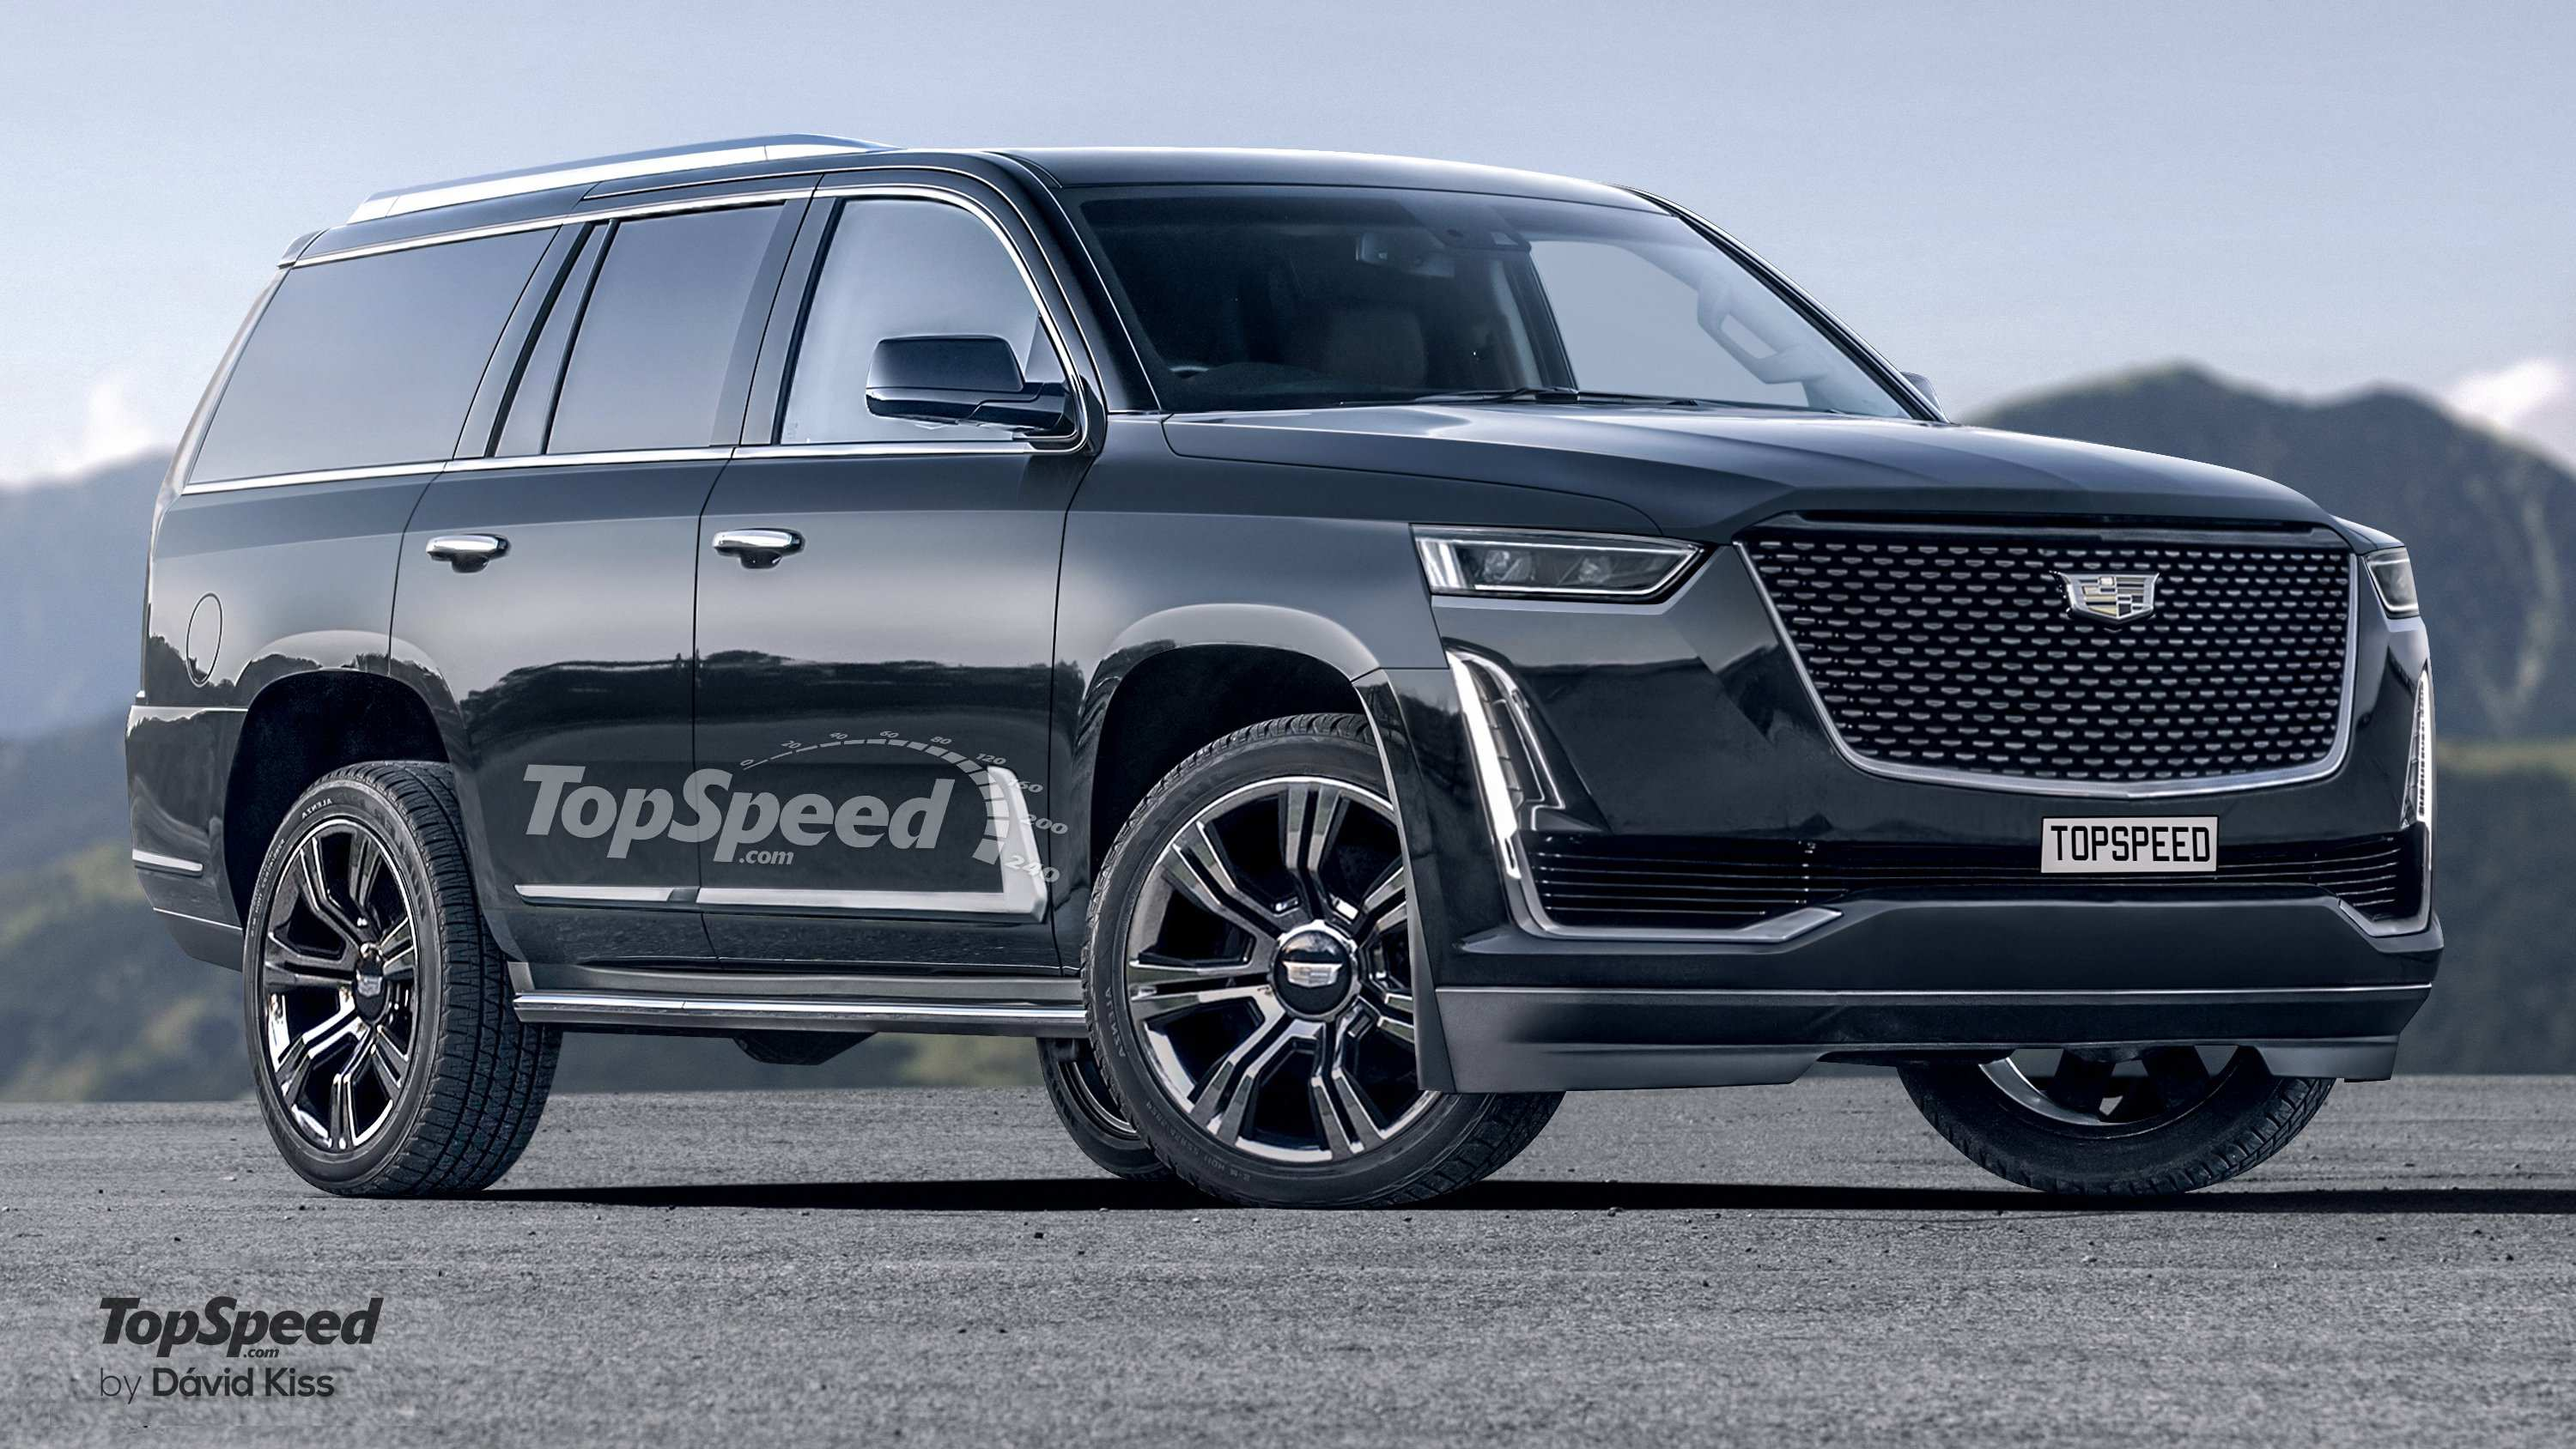 76 Concept of Release Date For 2020 Cadillac Escalade Configurations for Release Date For 2020 Cadillac Escalade